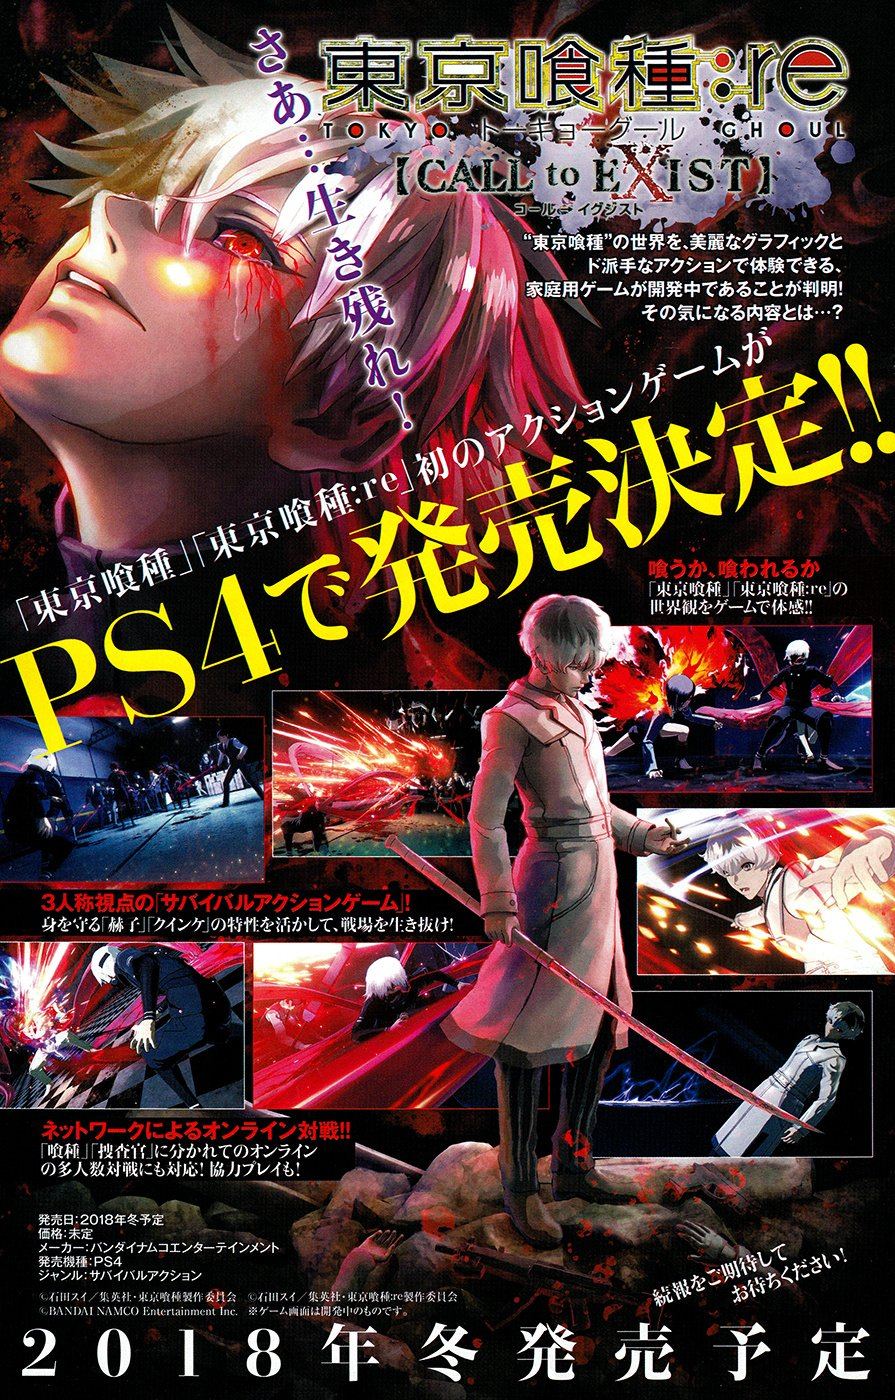 Tokyo Ghoul:re Call to Exist PS4 action game announced for